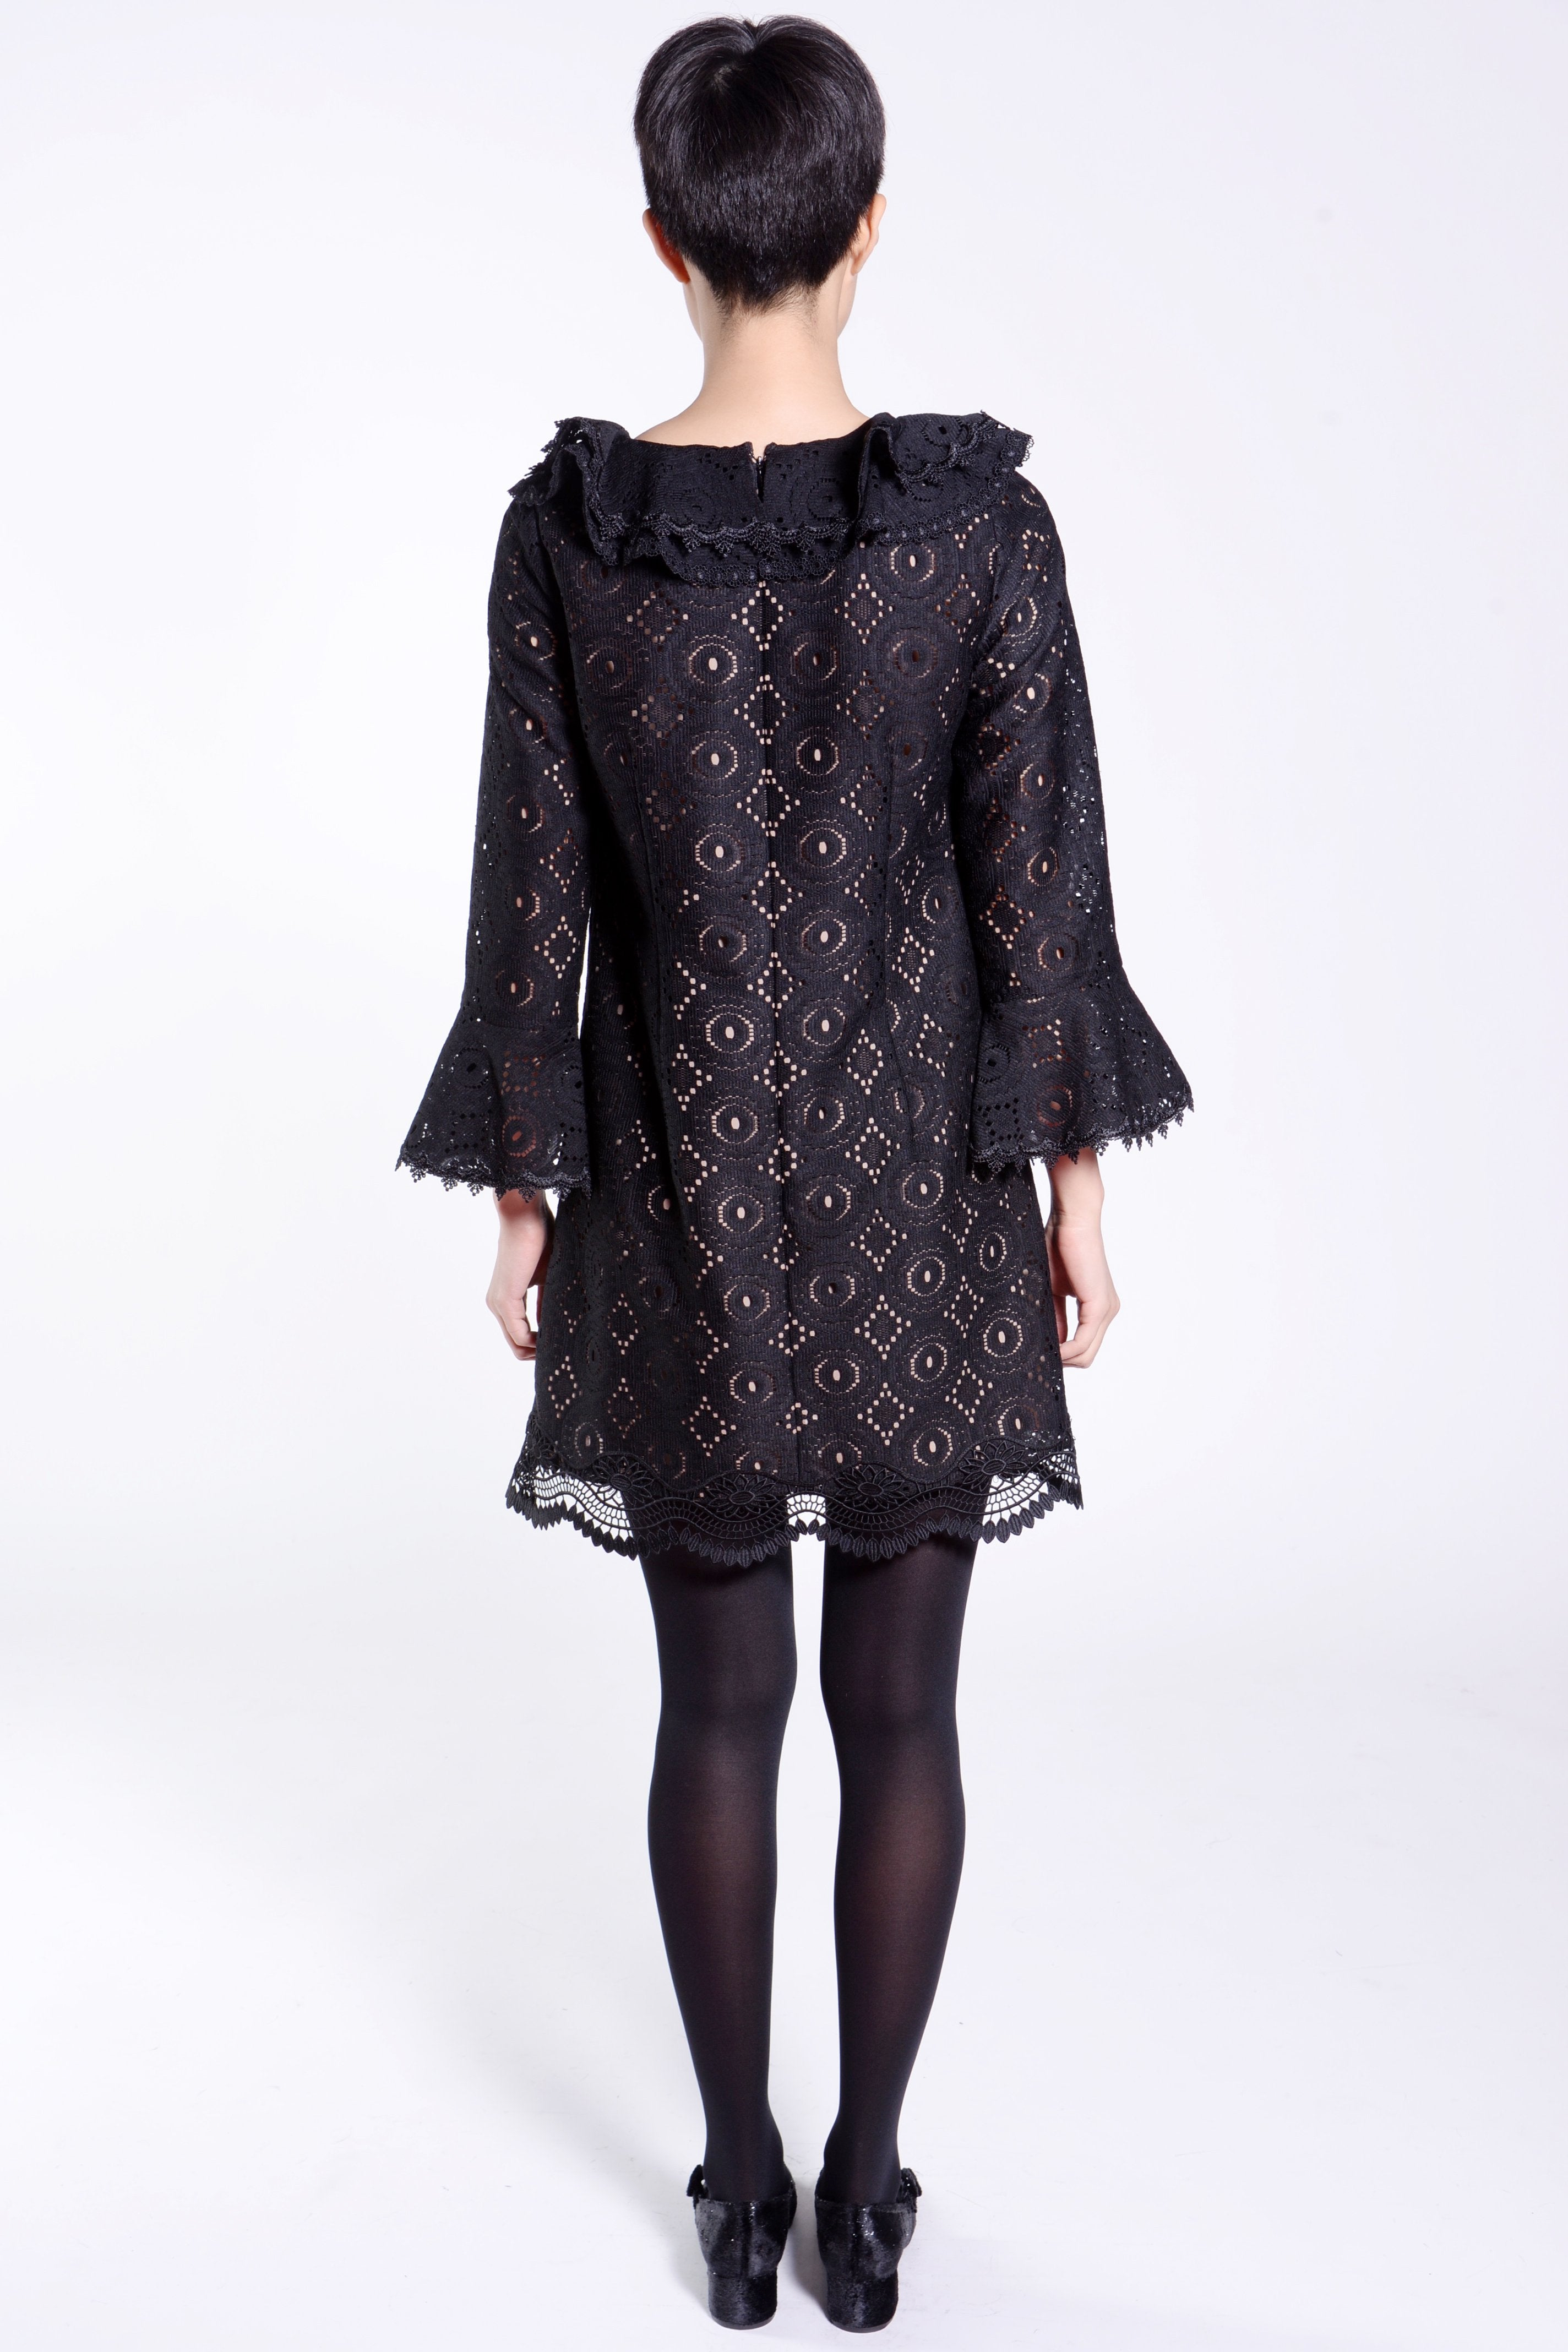 Deco Fleur Lace Ruffled Dress - Anna Sui